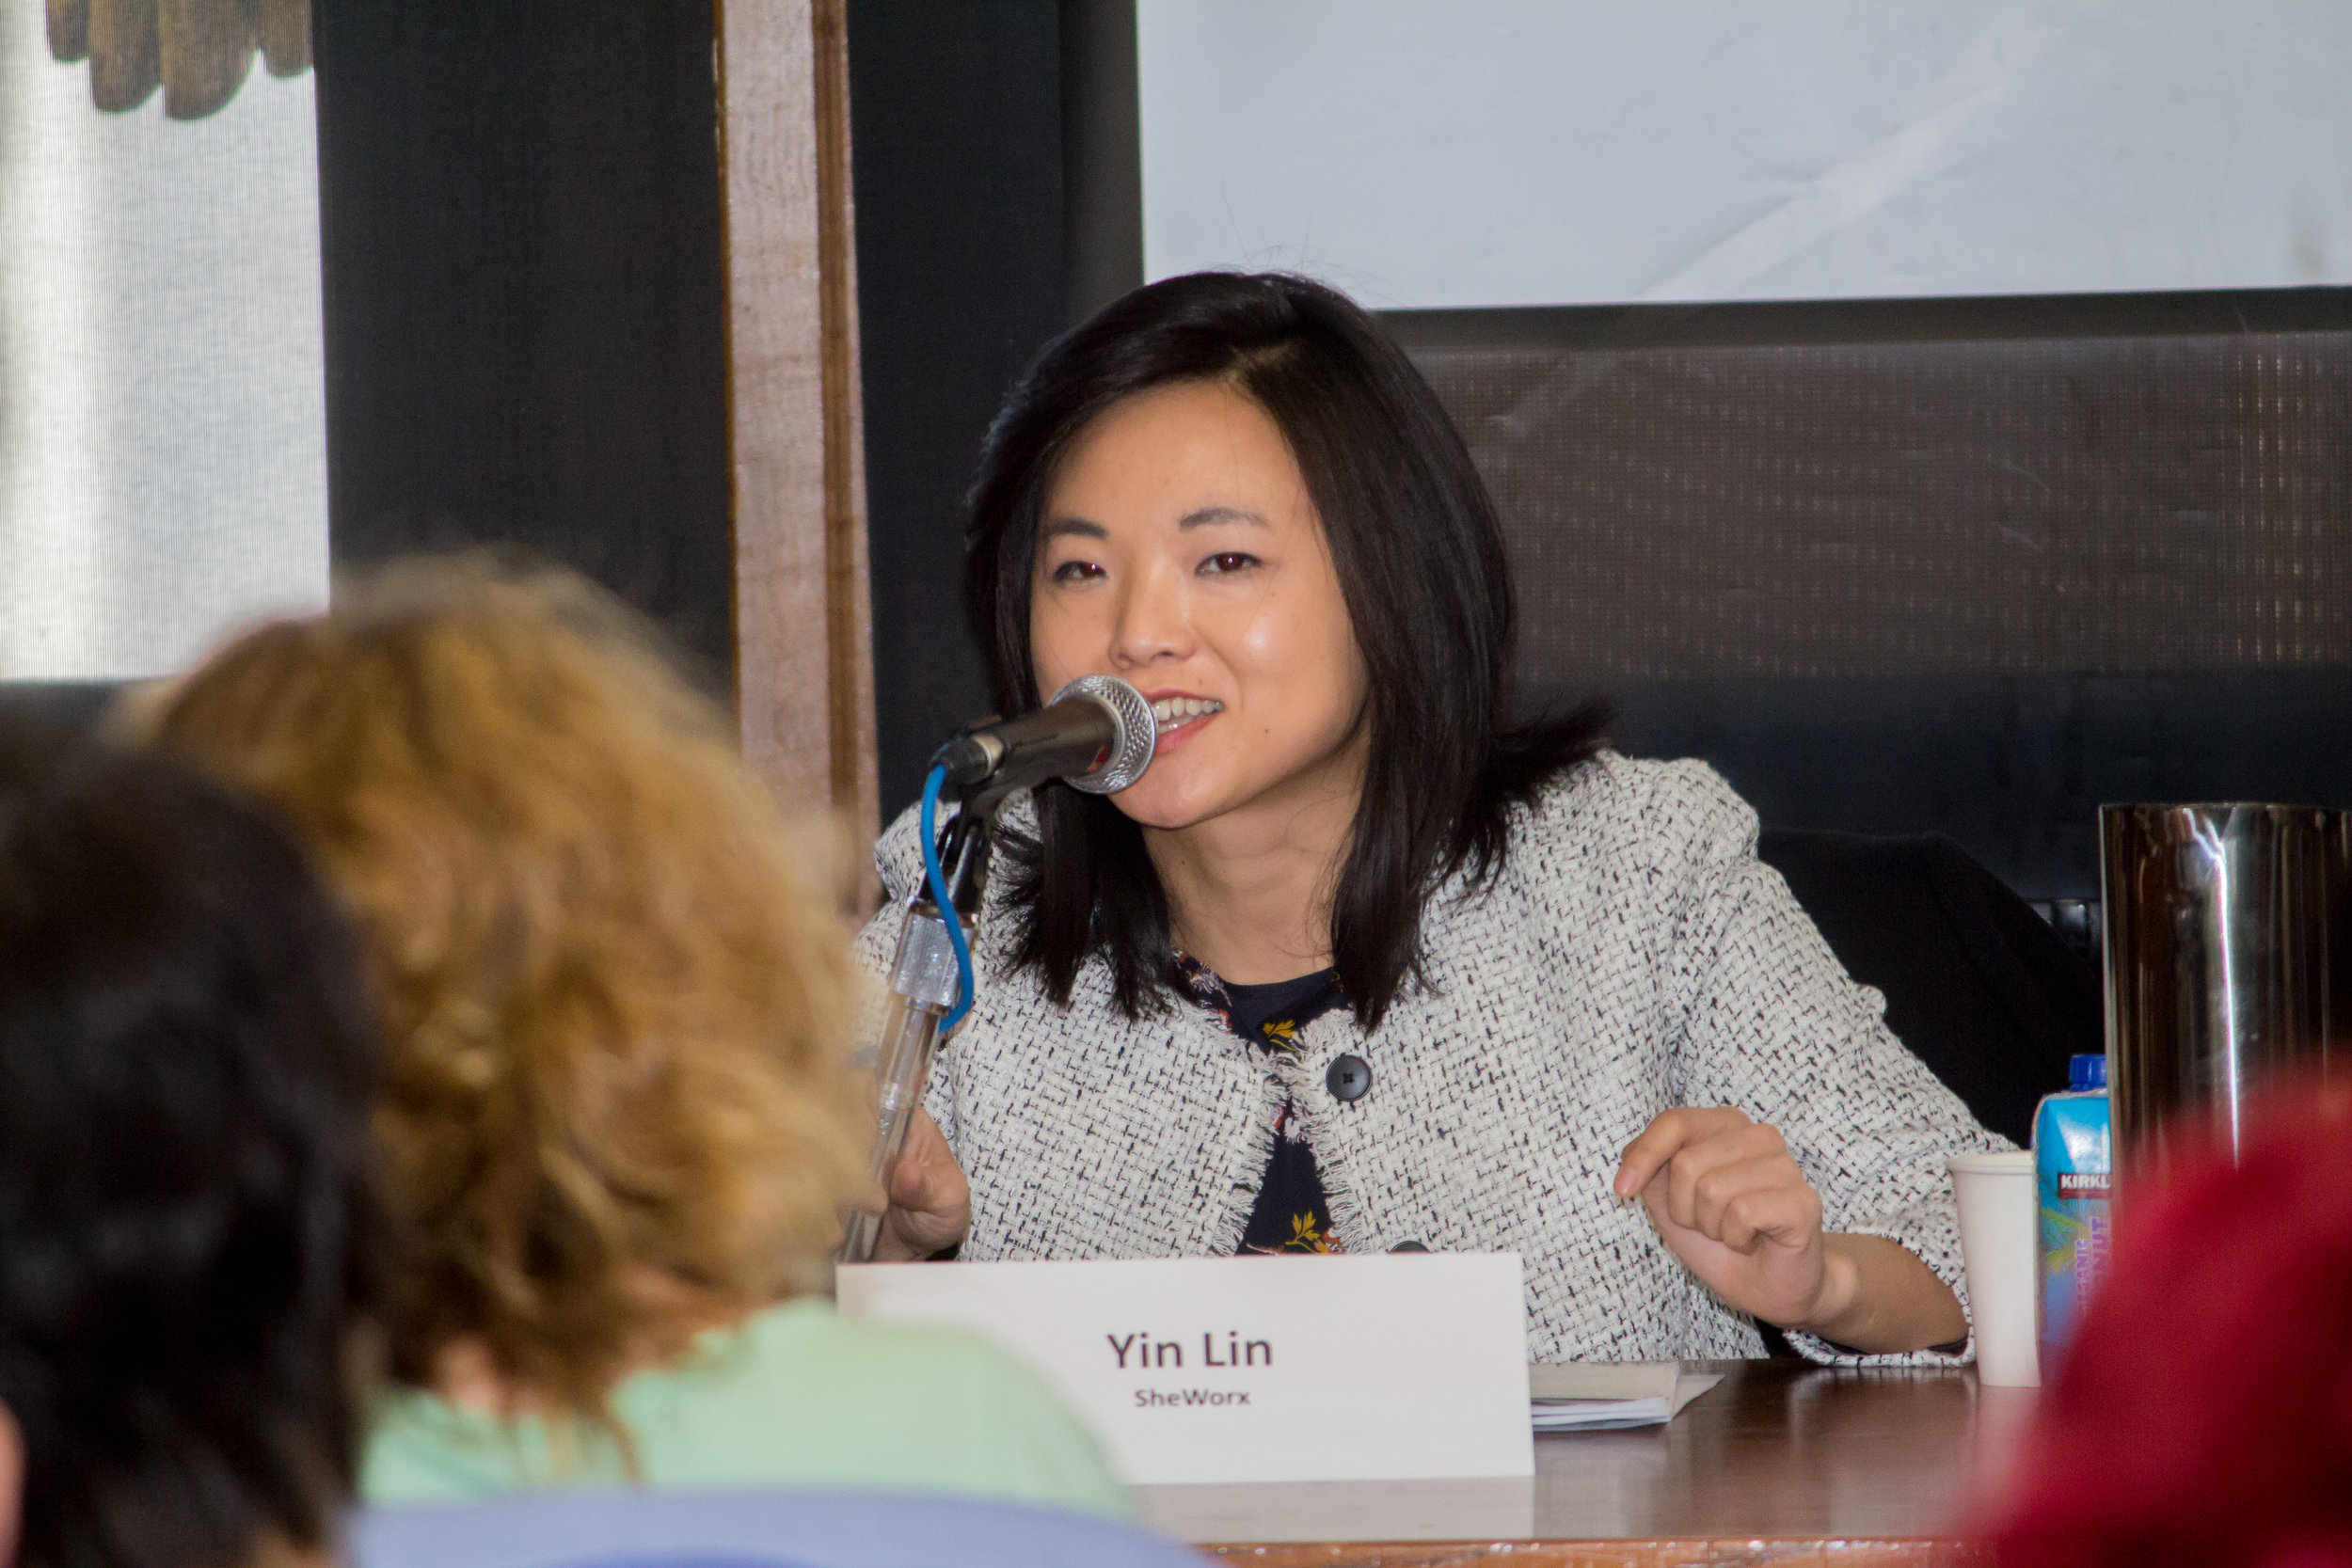 WENYC is NYC's Official Initiative to promote female entrepreneurship